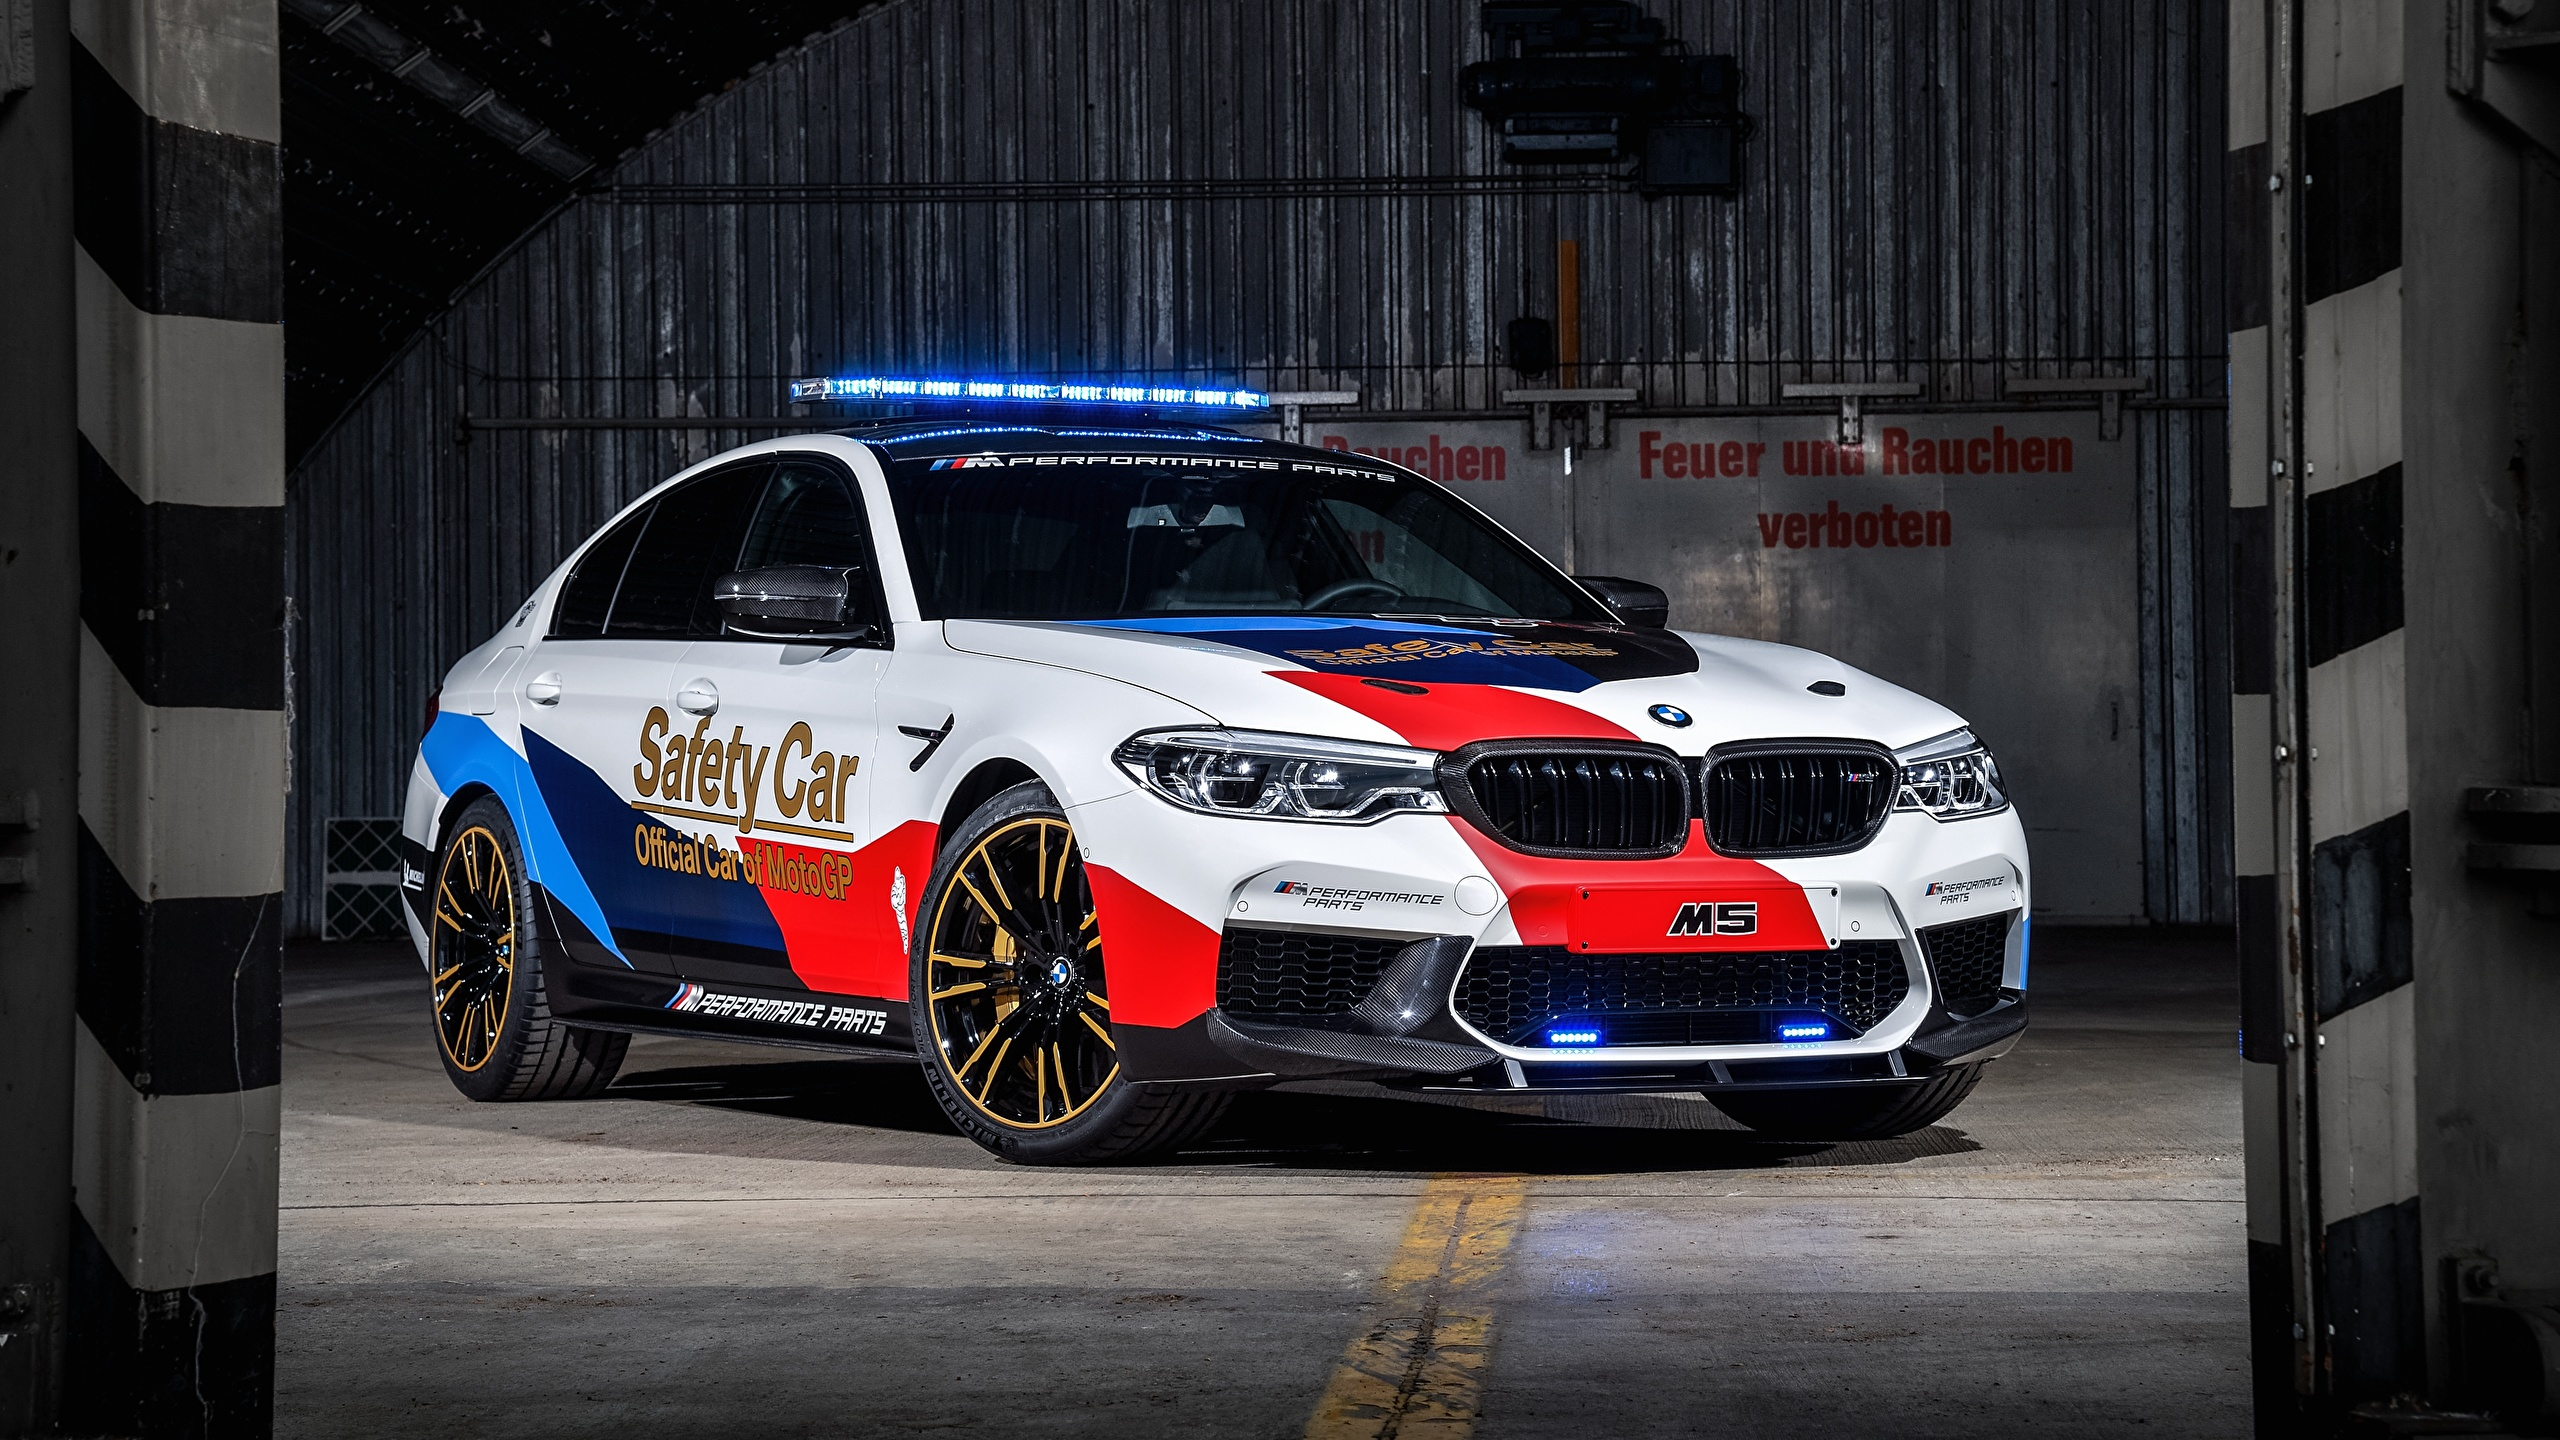 Images BMW Tuning 2018 M5 MotoGP Safety Car auto 2560x1440 Cars automobile